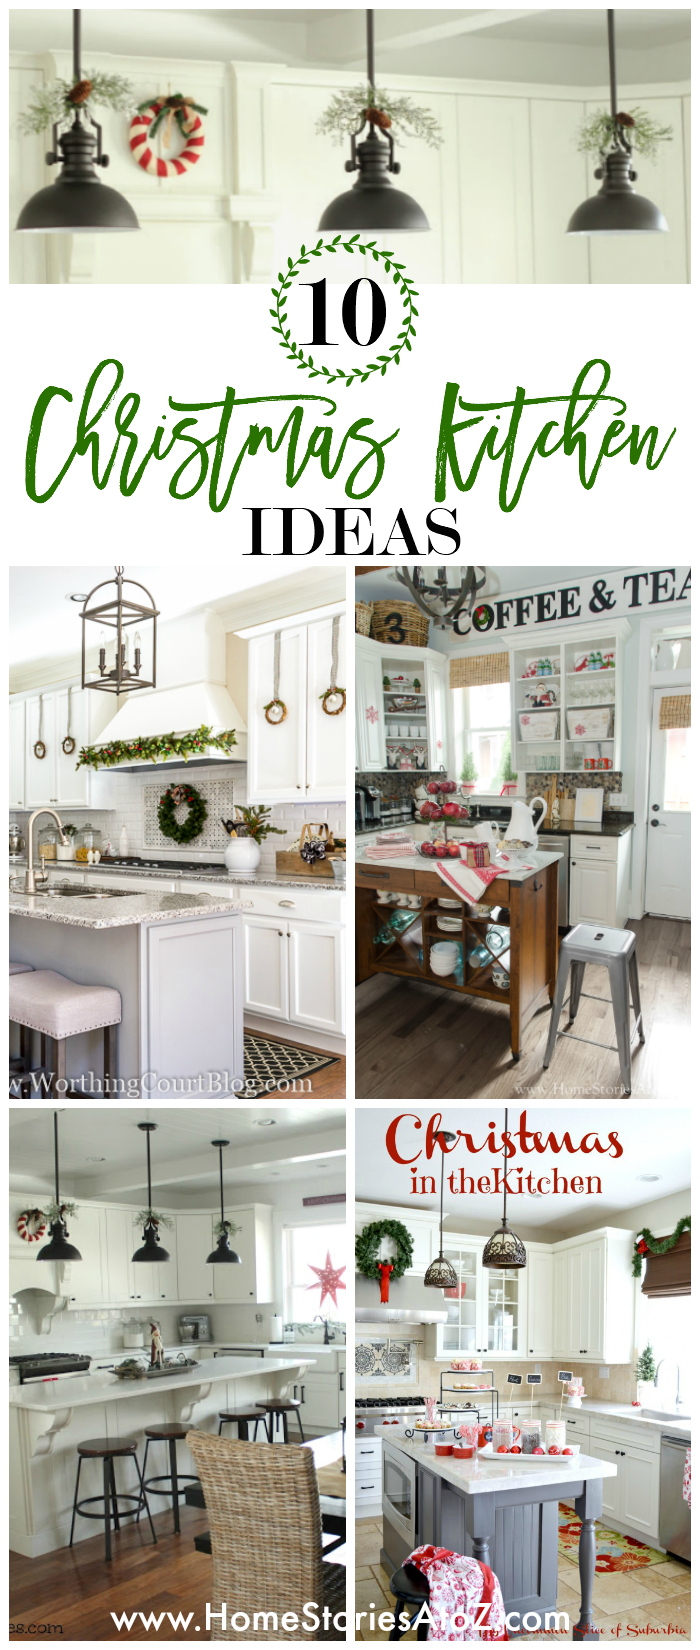 10 Festive Christmas Kitchen Ideas - Home Stories A to Z